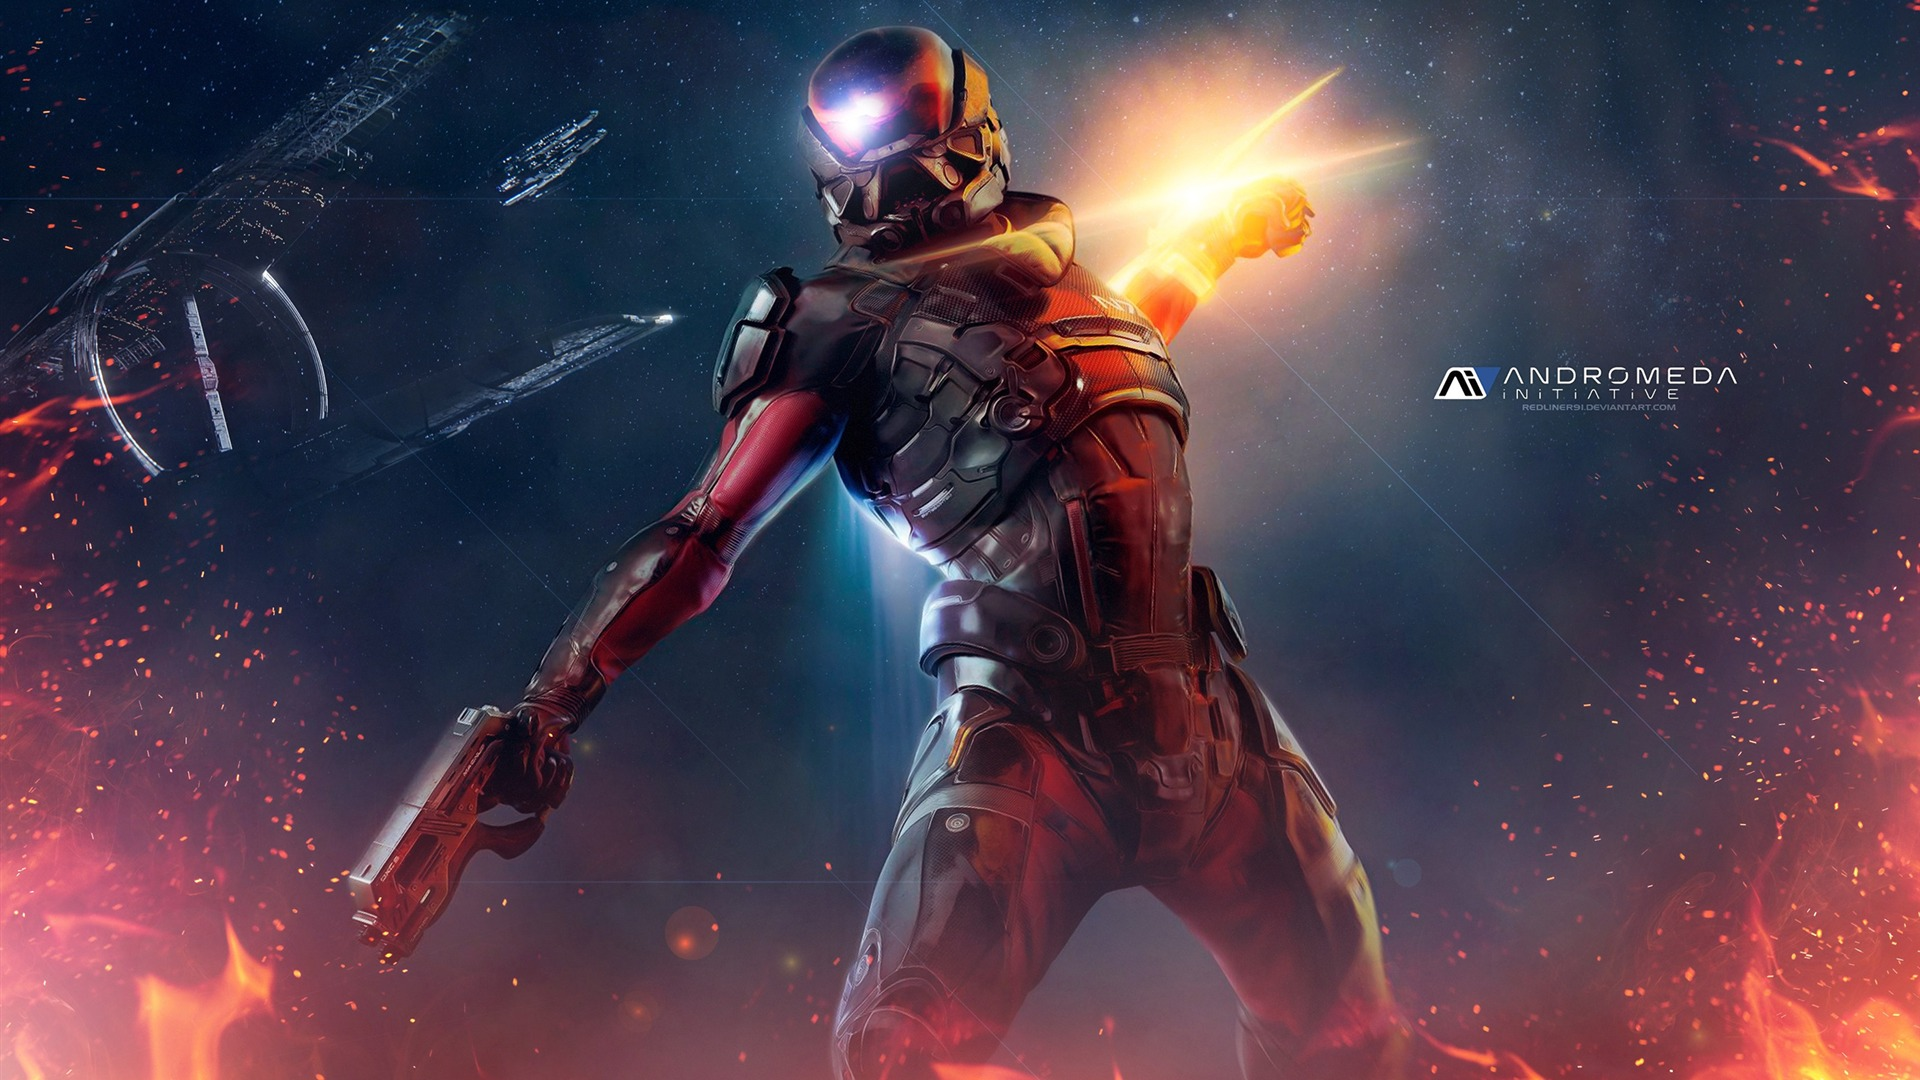 Mass Effect Andromeda 2017 Game Wallpaper 10 - 1920x1080 wallpaper download